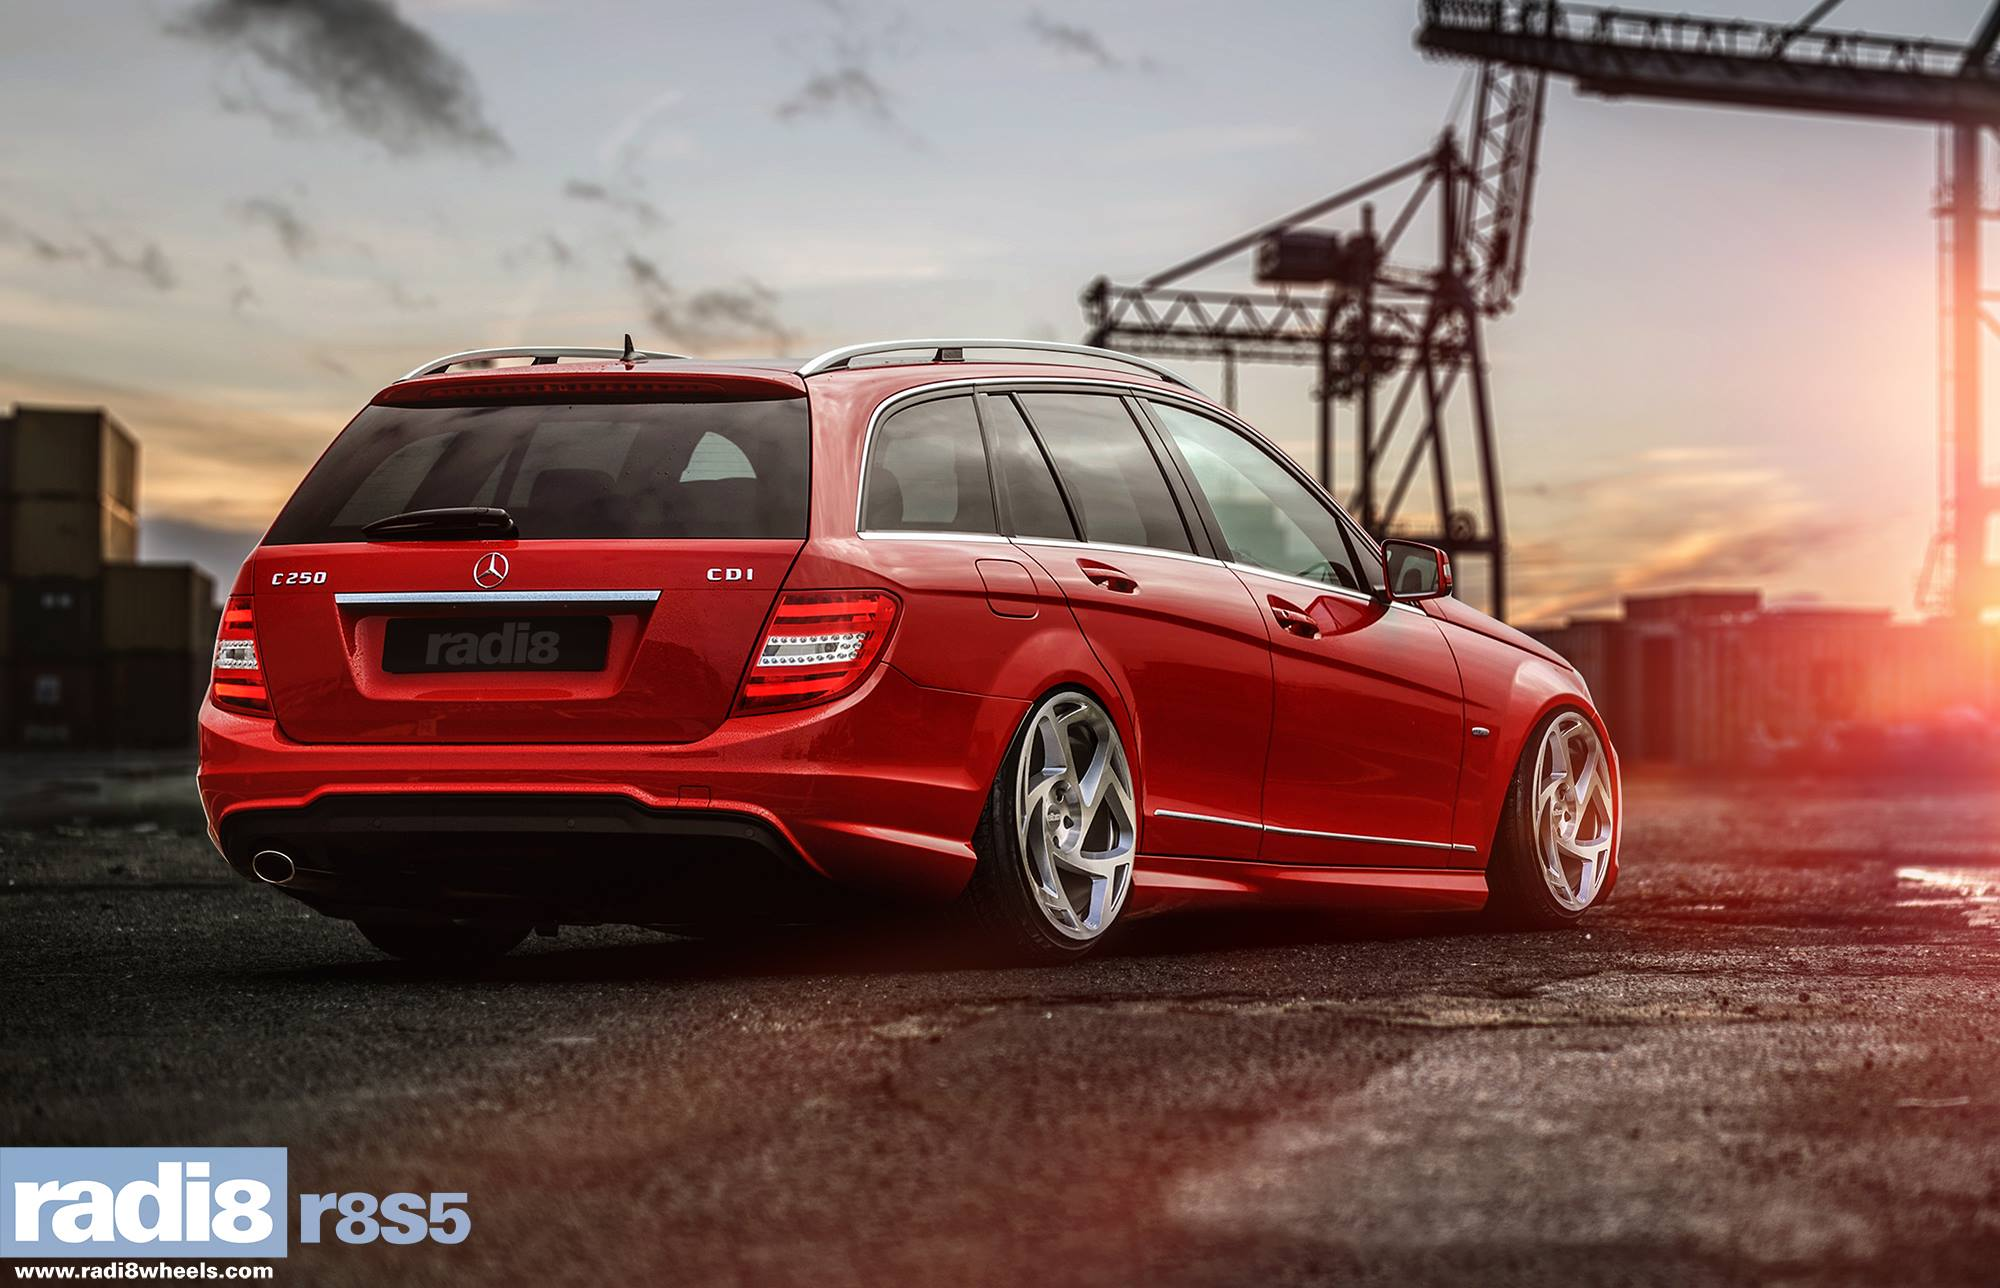 Radi8 R8S5 wheels - Mercedes-Benz C250